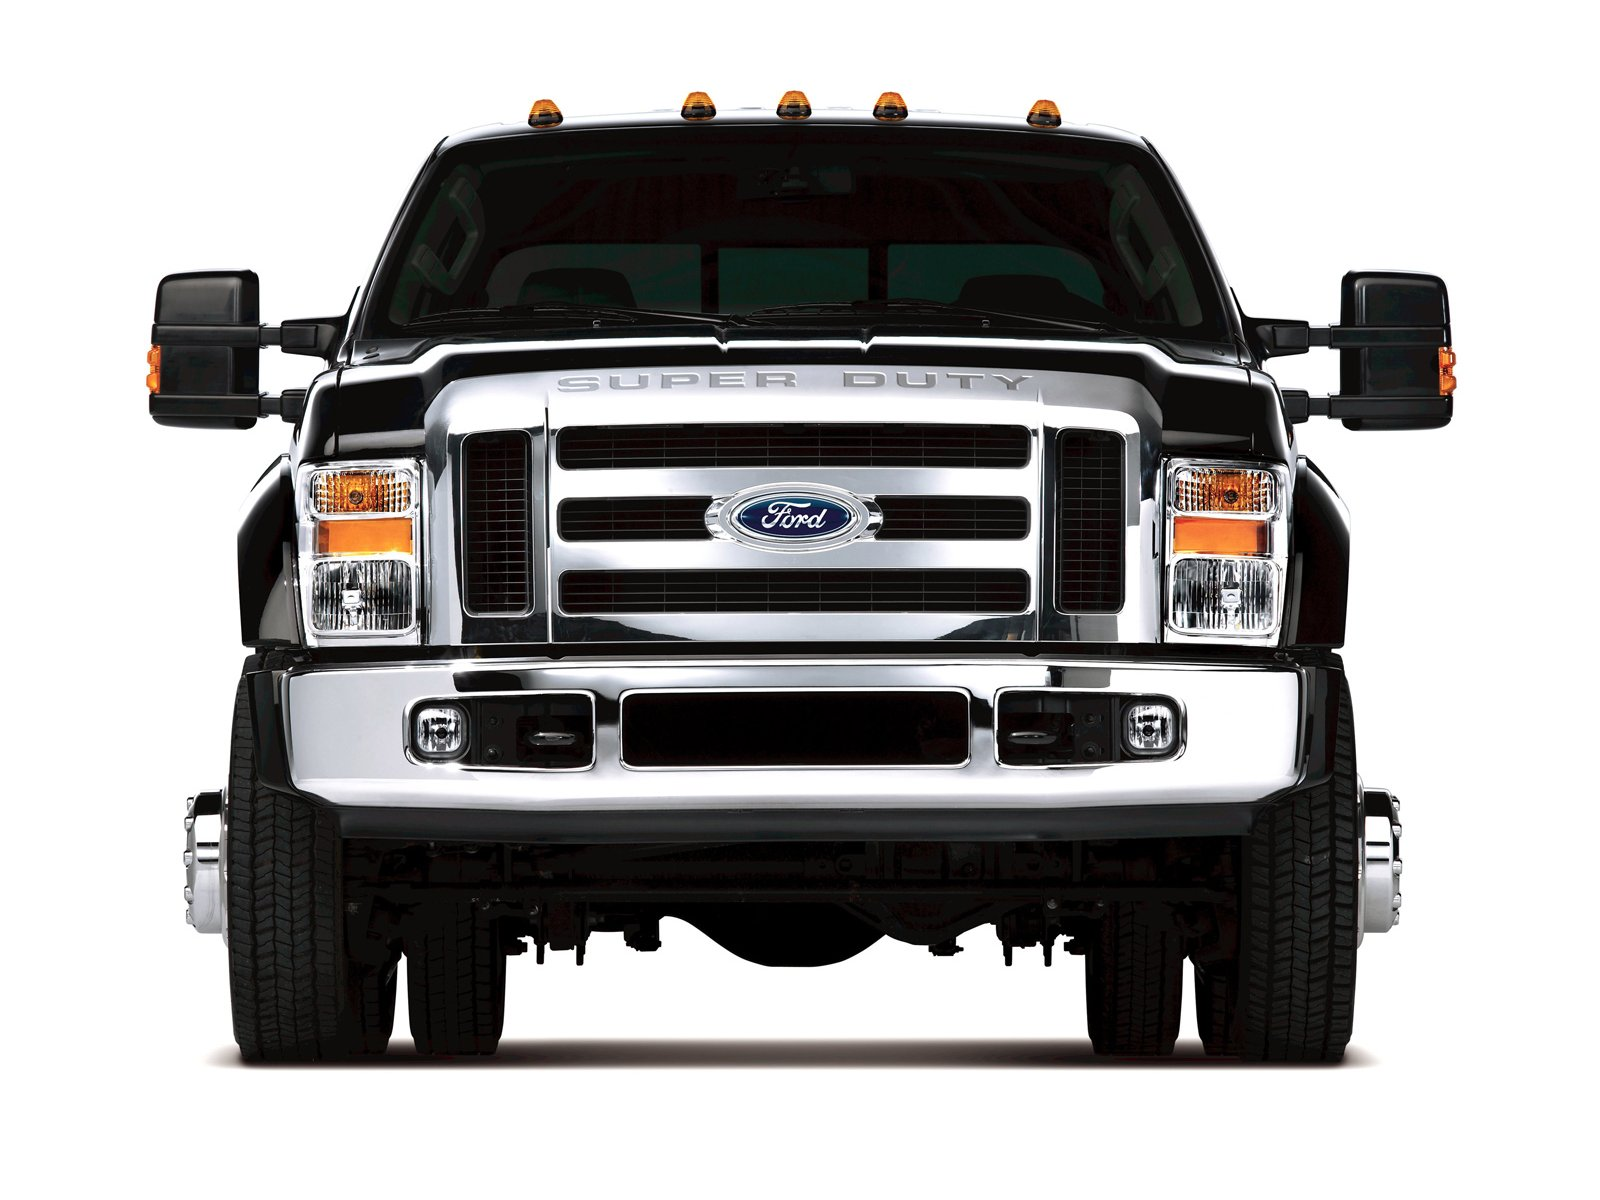 Ford 350 2005 photo - 2